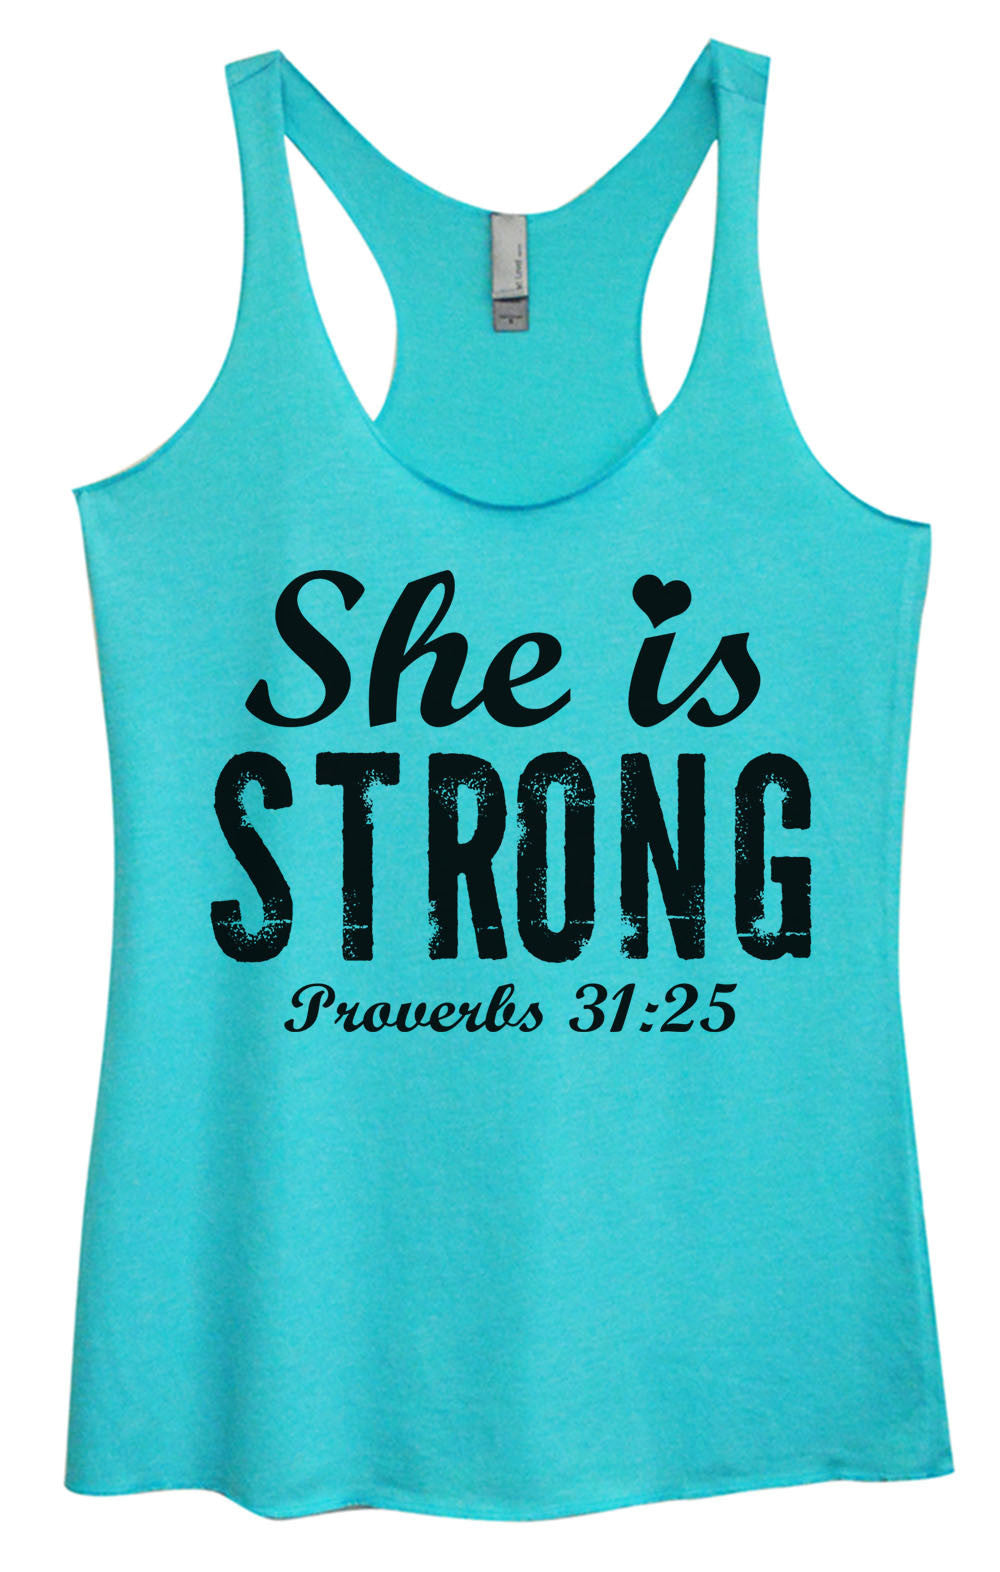 Womens Fashion Triblend Tank Top - She Is Strong Proverbs 31:25 - Tri-939 - Funny Shirts Tank Tops Burnouts and Triblends  - 2